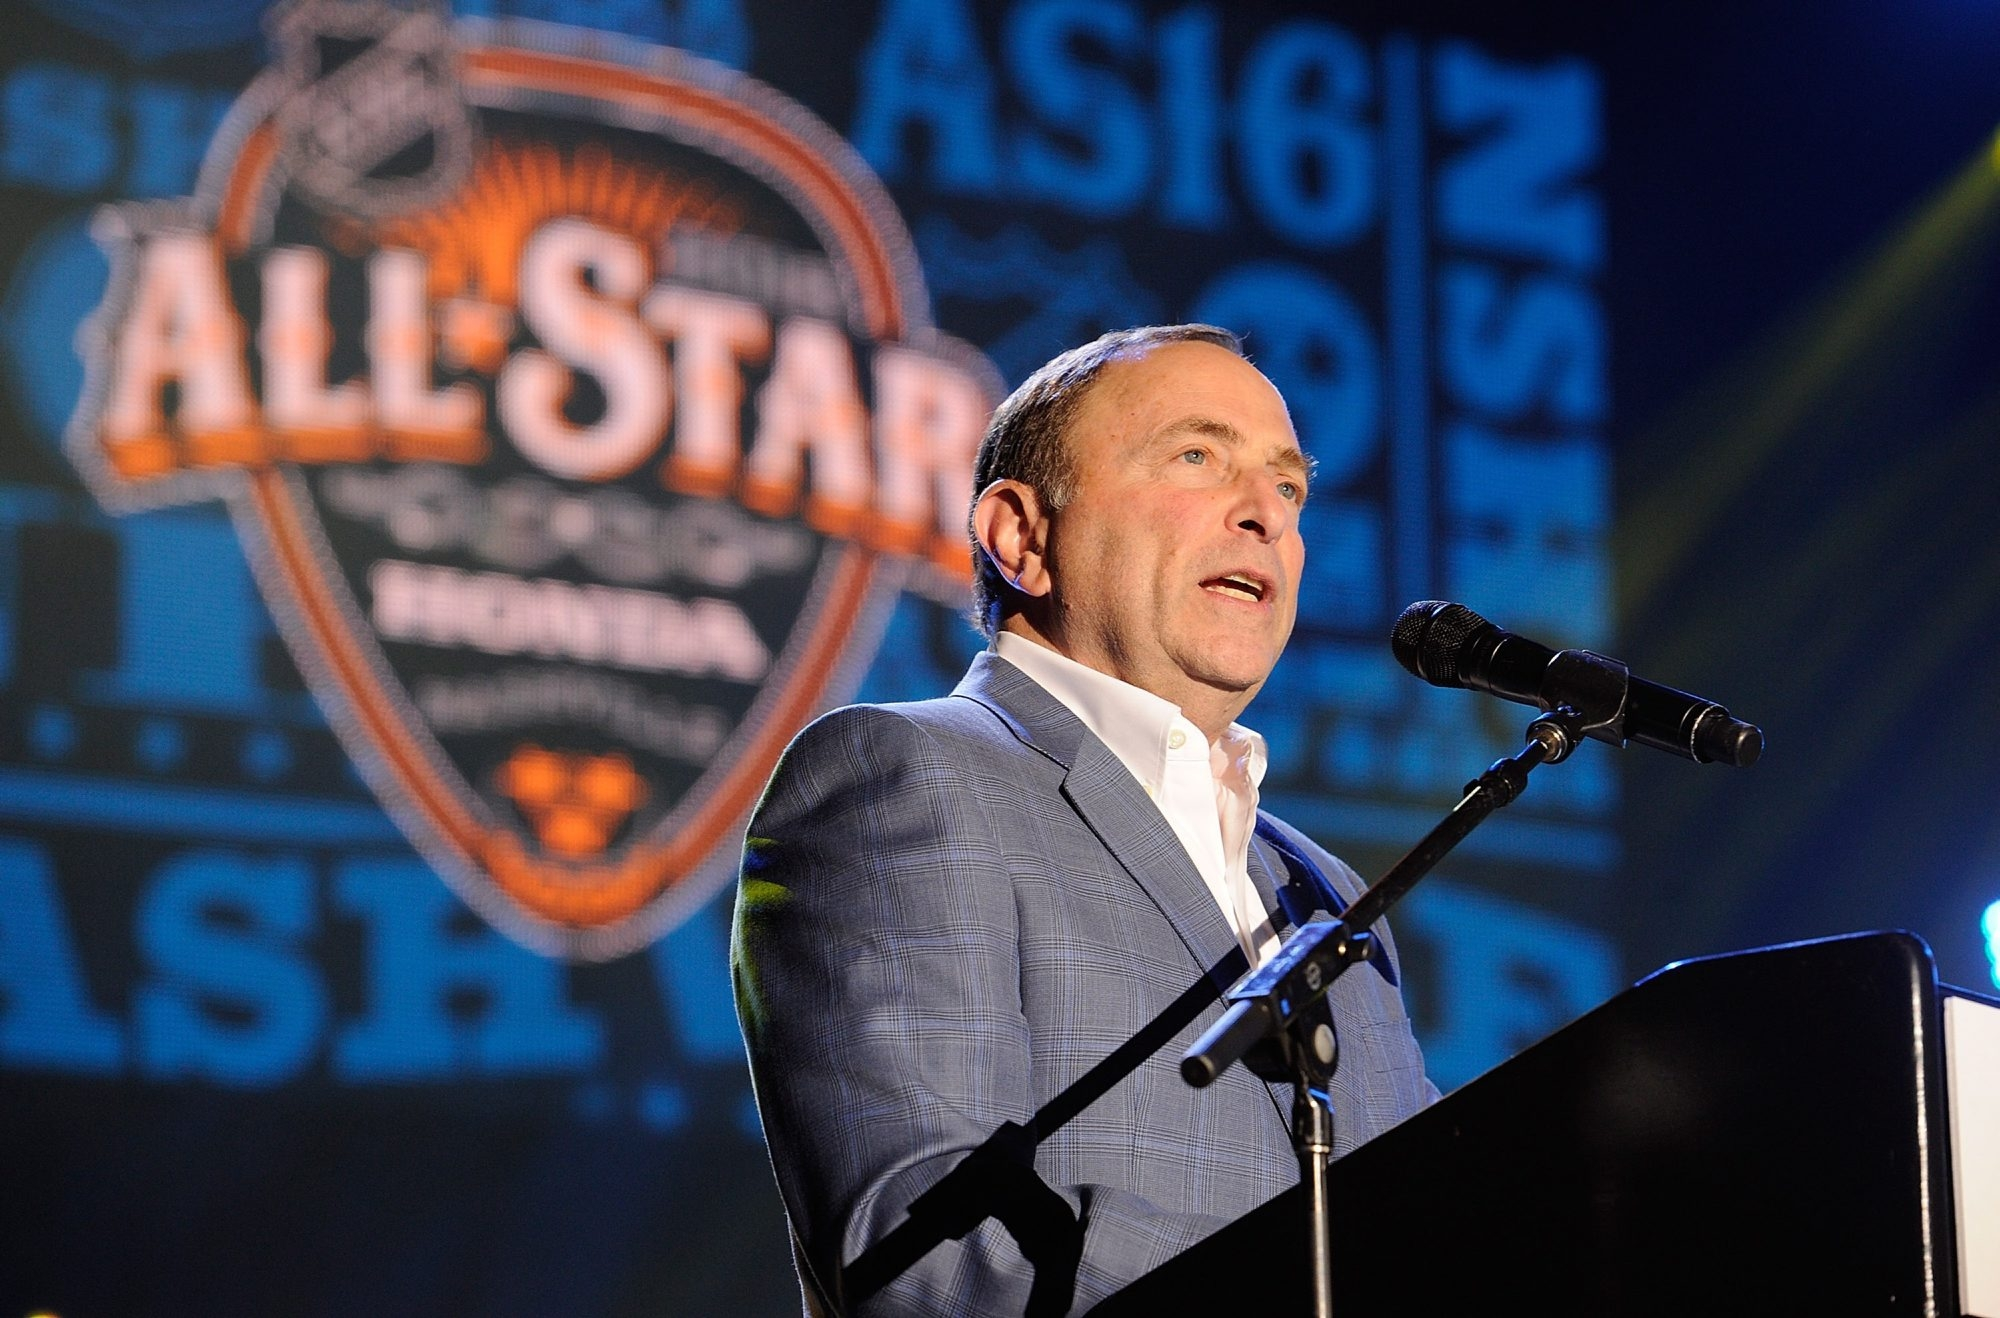 Gary Bettman said the league has yet to discuss changes to the All-Star voting process after John Scott was voted on the Pacific Division team.